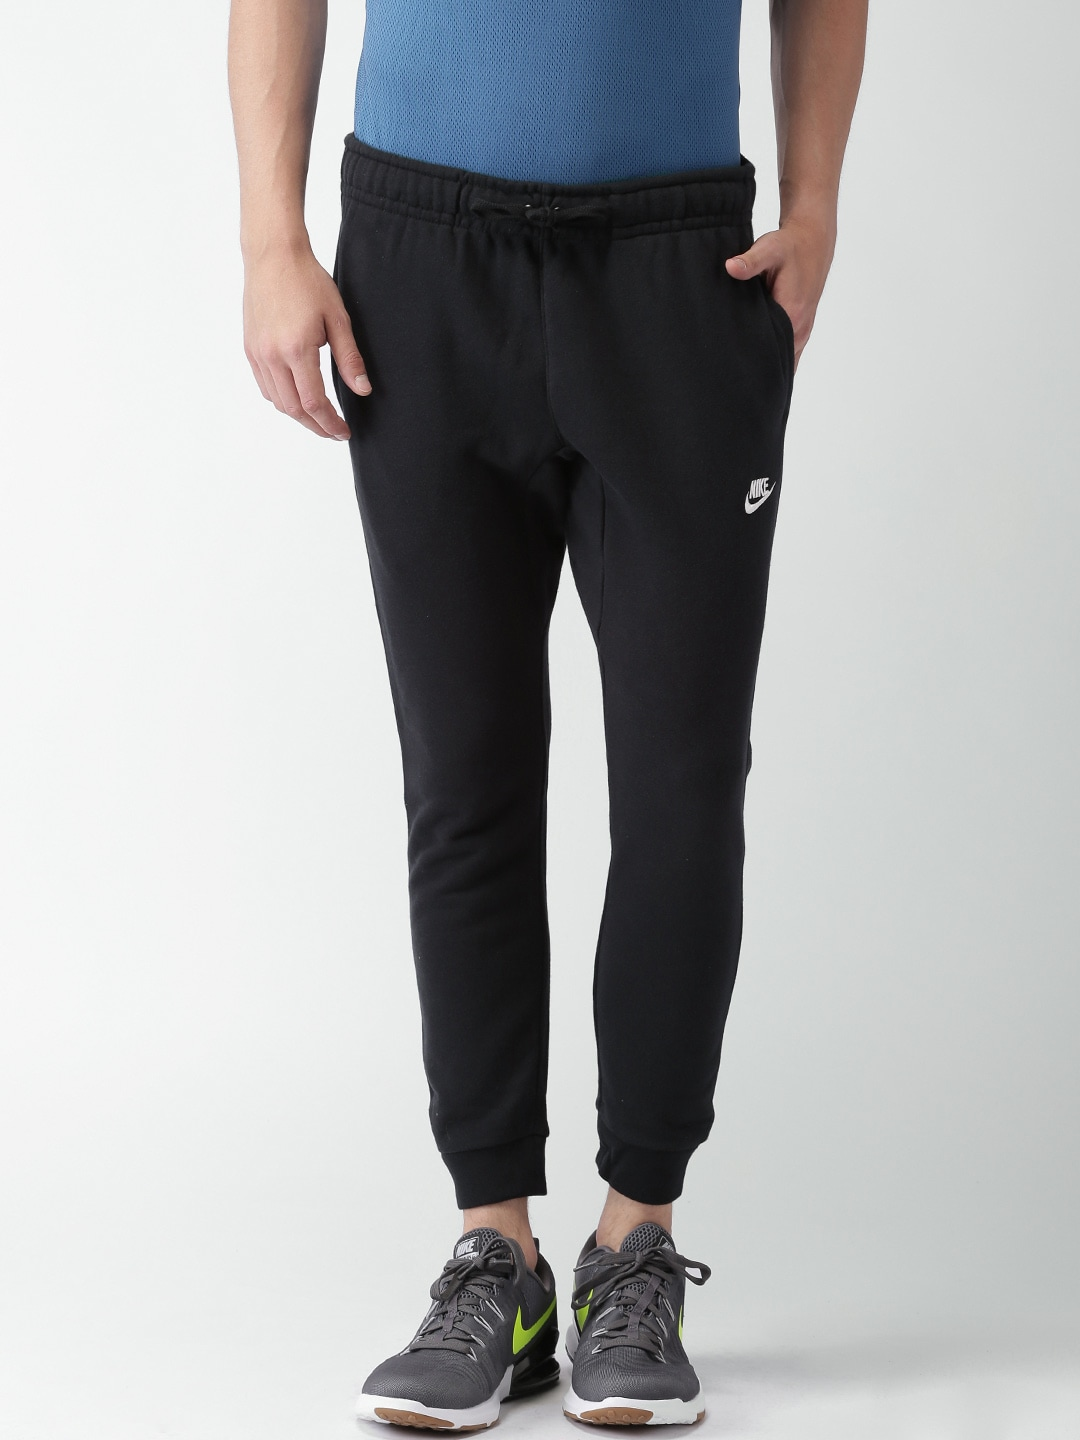 d918177a978a Nike Joggers Headband Track Pants Pants Jackets - Buy Nike Joggers Headband  Track Pants Pants Jackets online in India